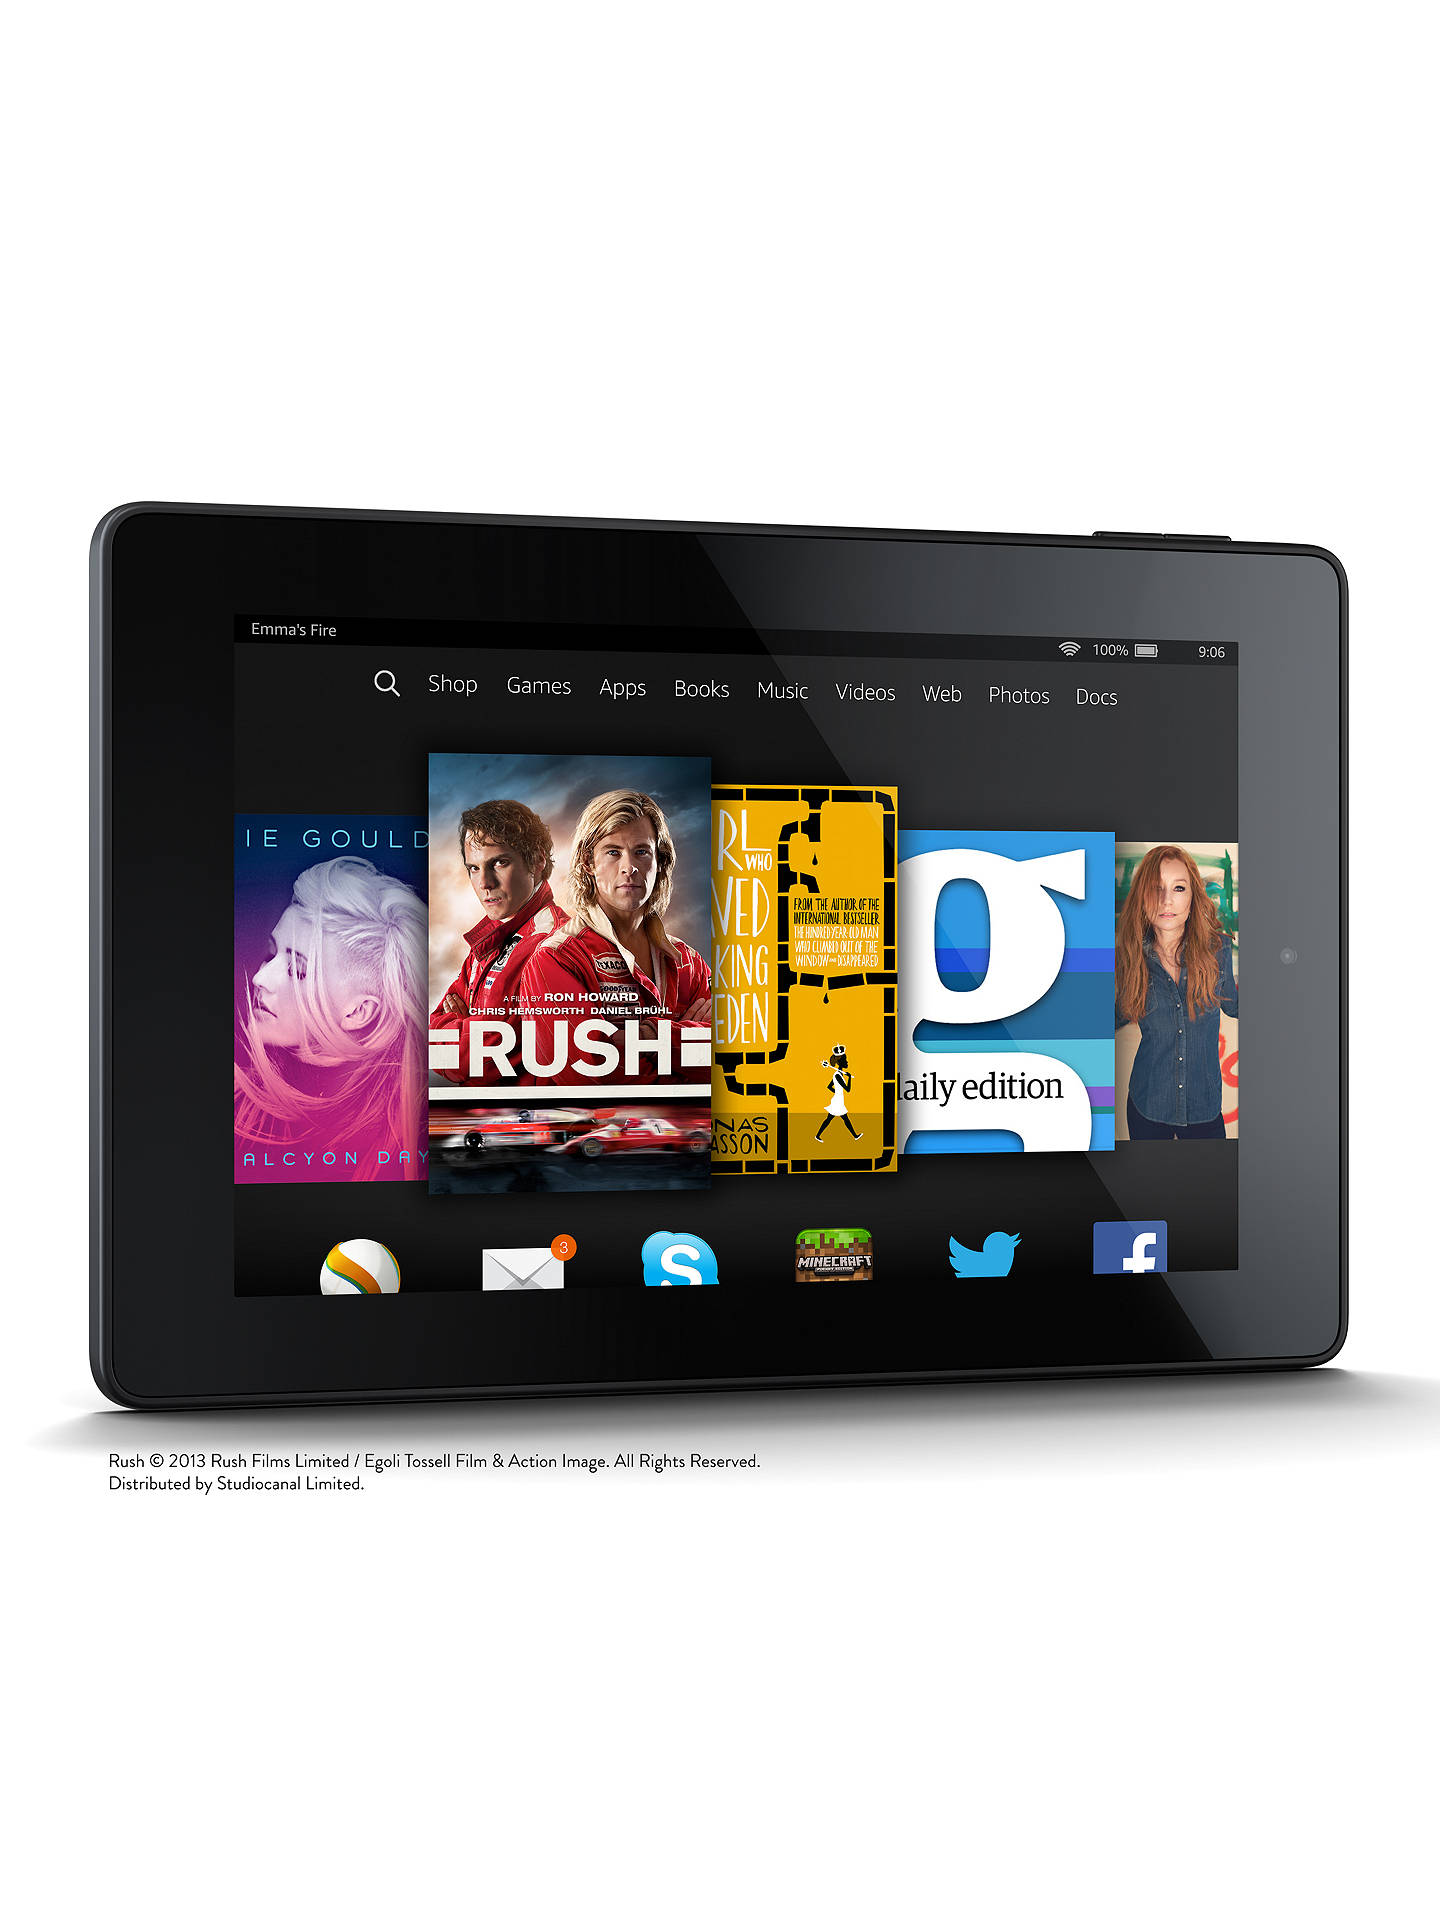 Amazon Fire HD 7 Tablet, Quad-core, Fire OS, 7